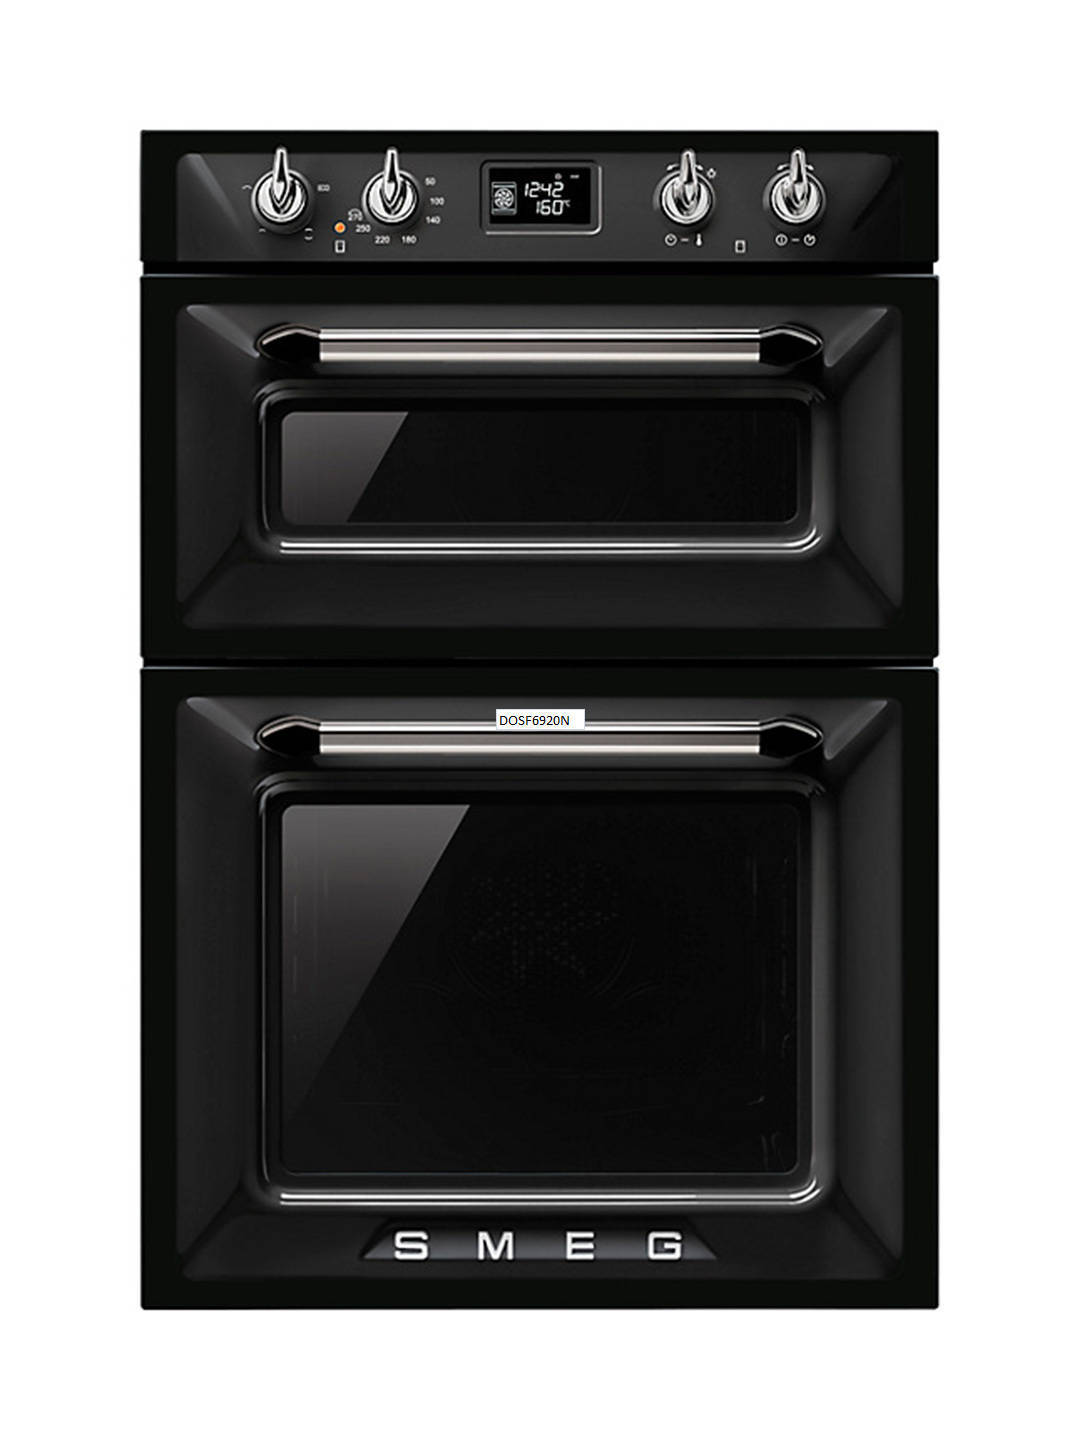 Where Can I Buy Appliances Kitchen Appliances I Cookers Ovens Washing Machines Freezers